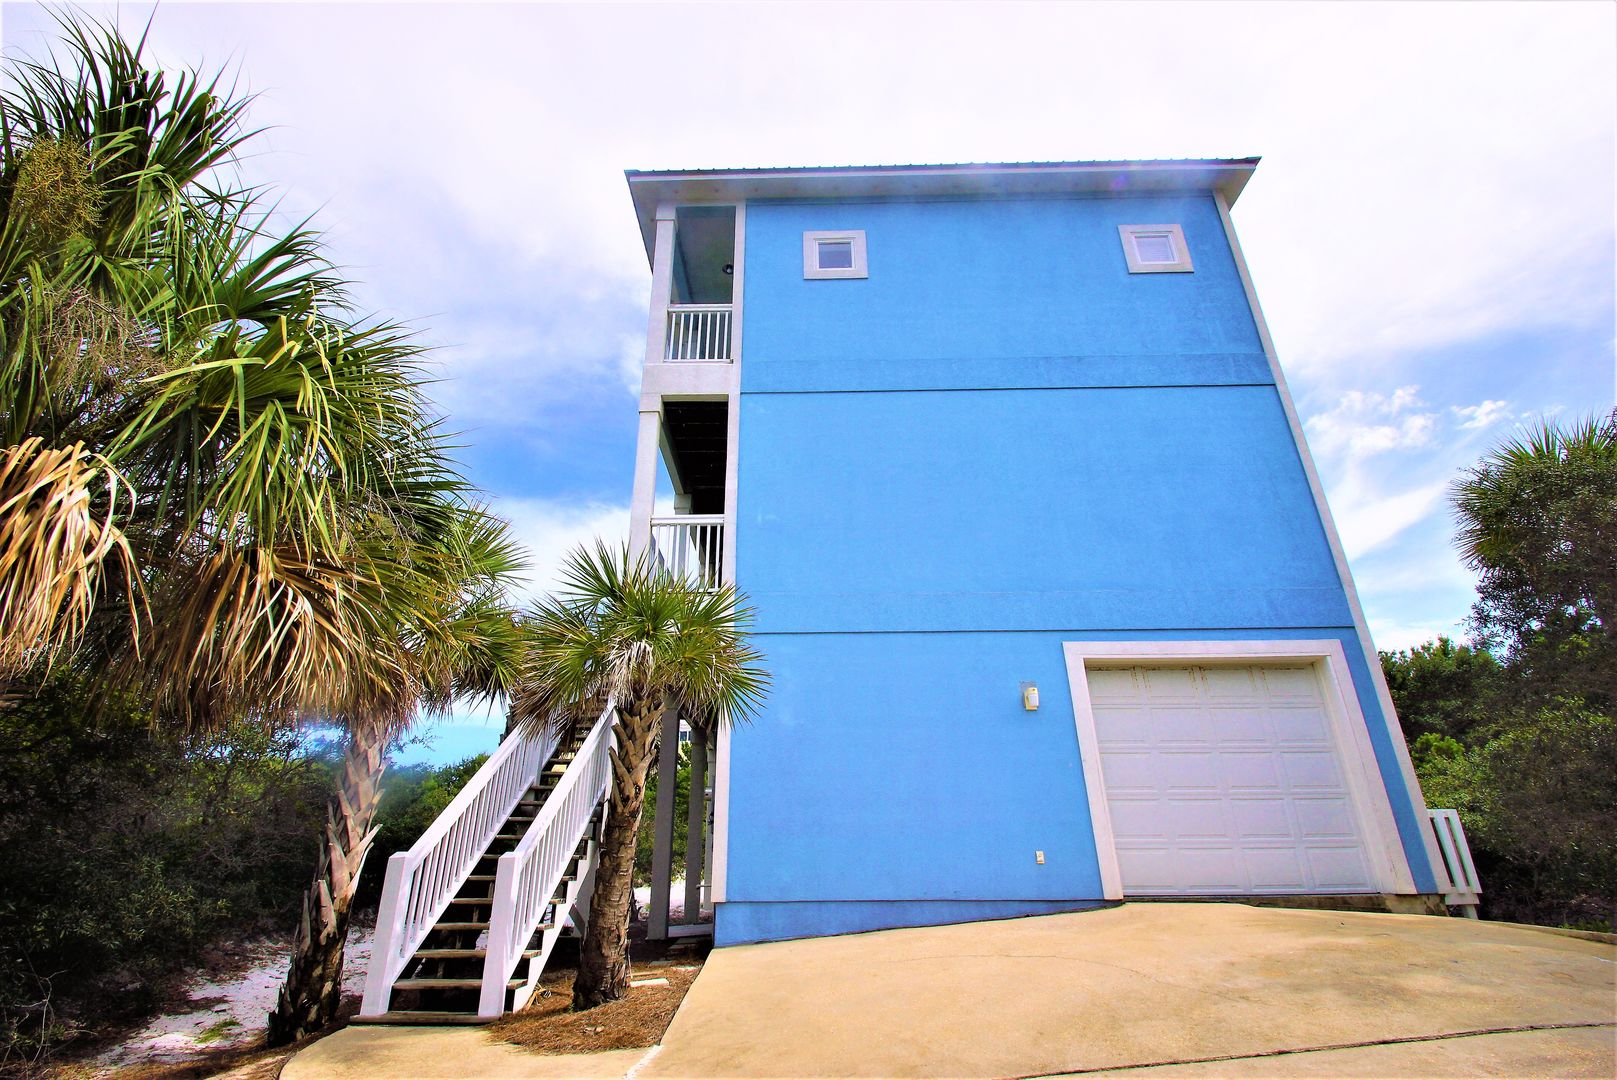 An Image of the Side of the Vacation Home in Gulf Shores.